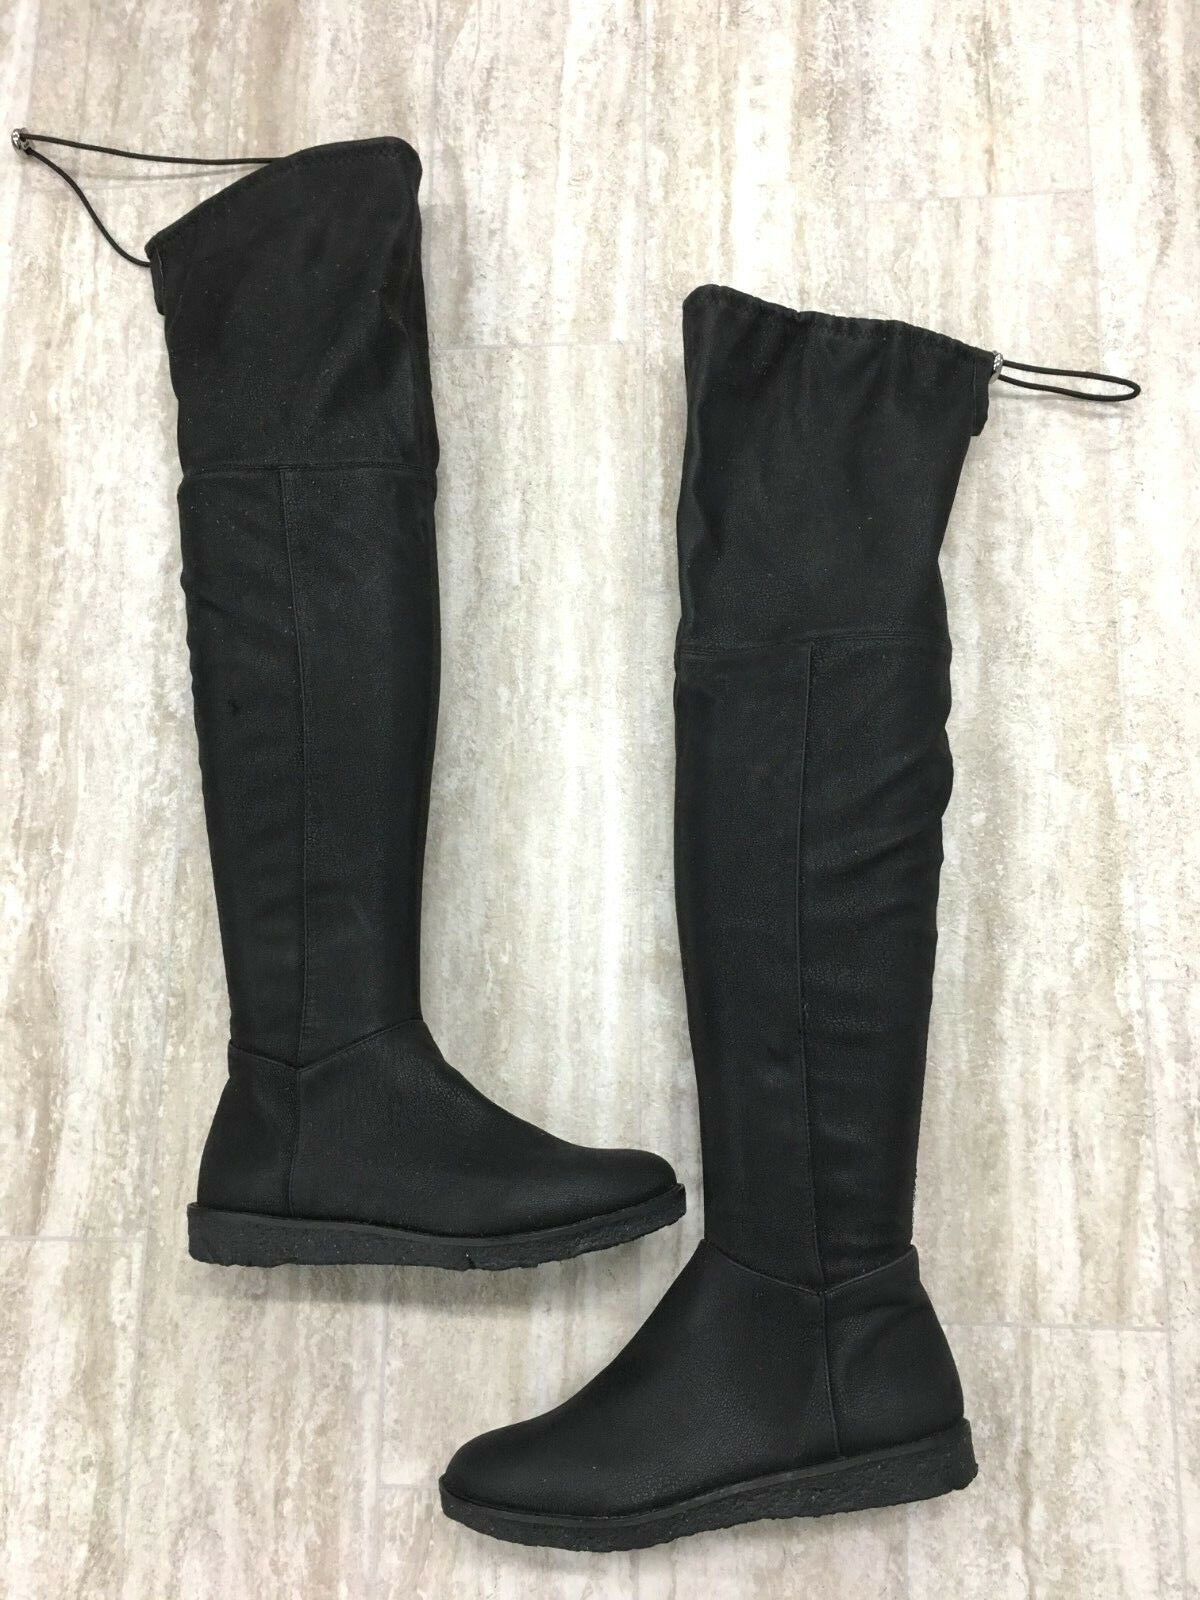 BCBGeneration Brennan Tall Over the Knee Black Flat Boots Size 6.5